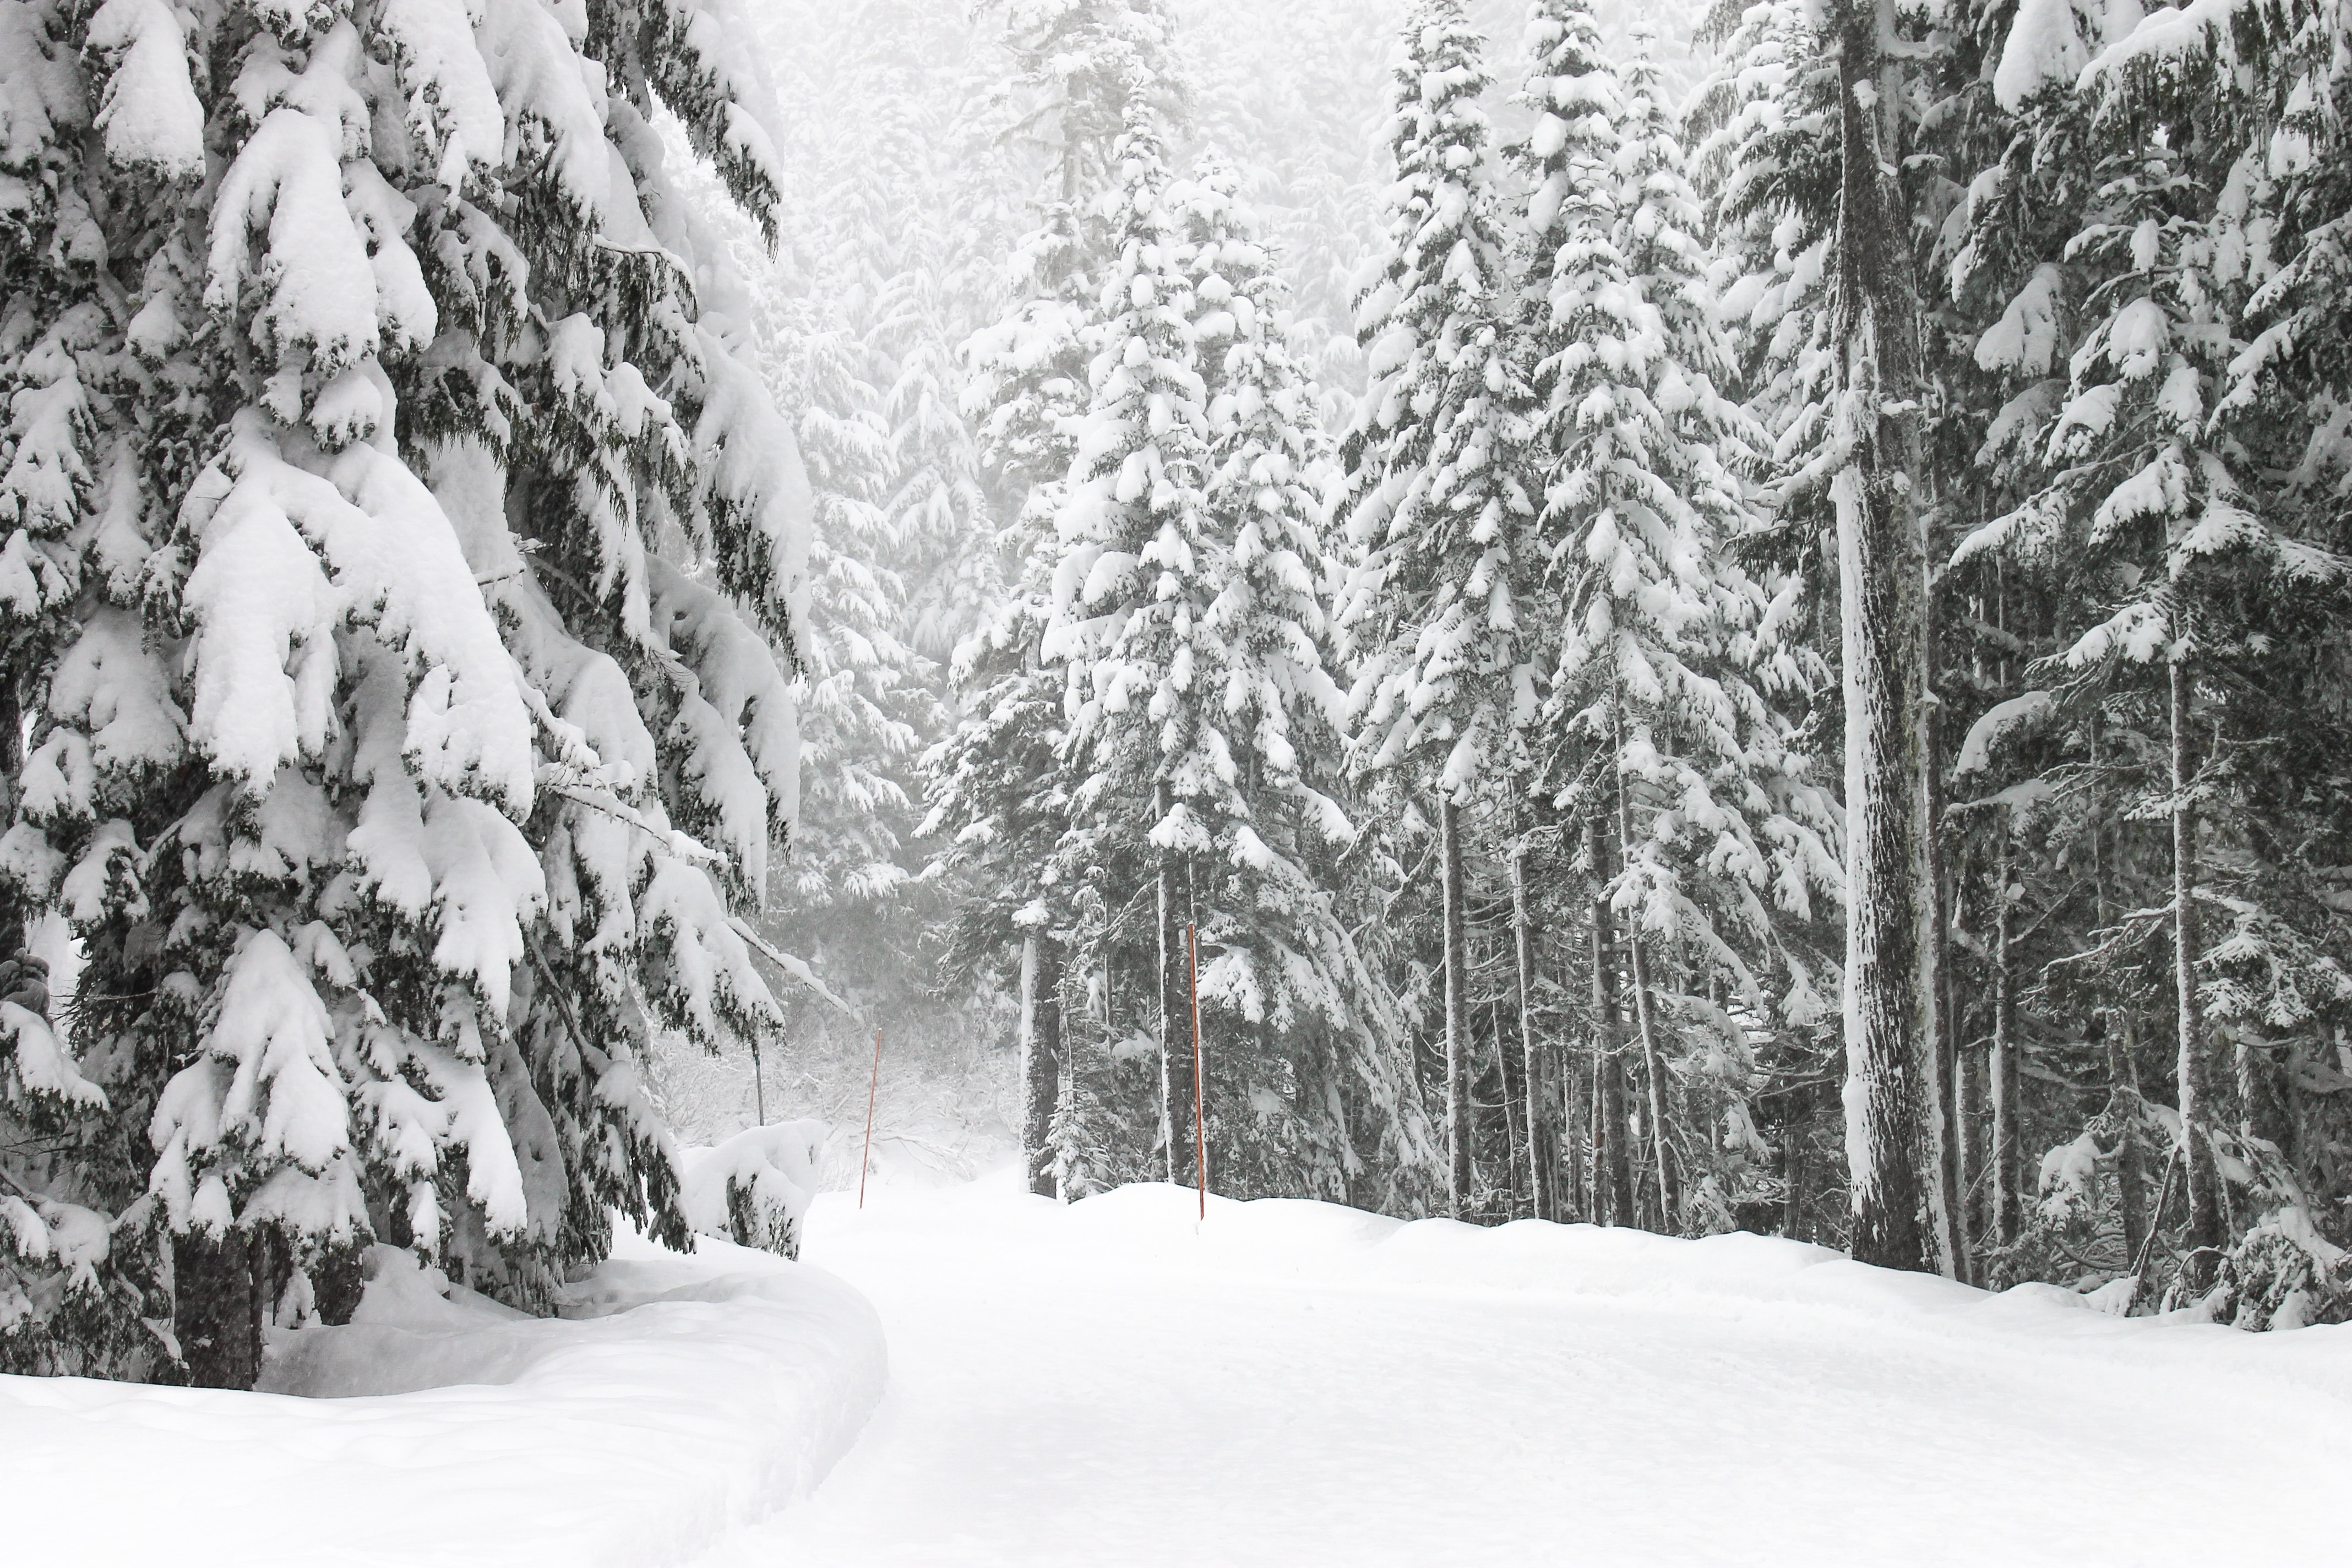 road and trees with snow